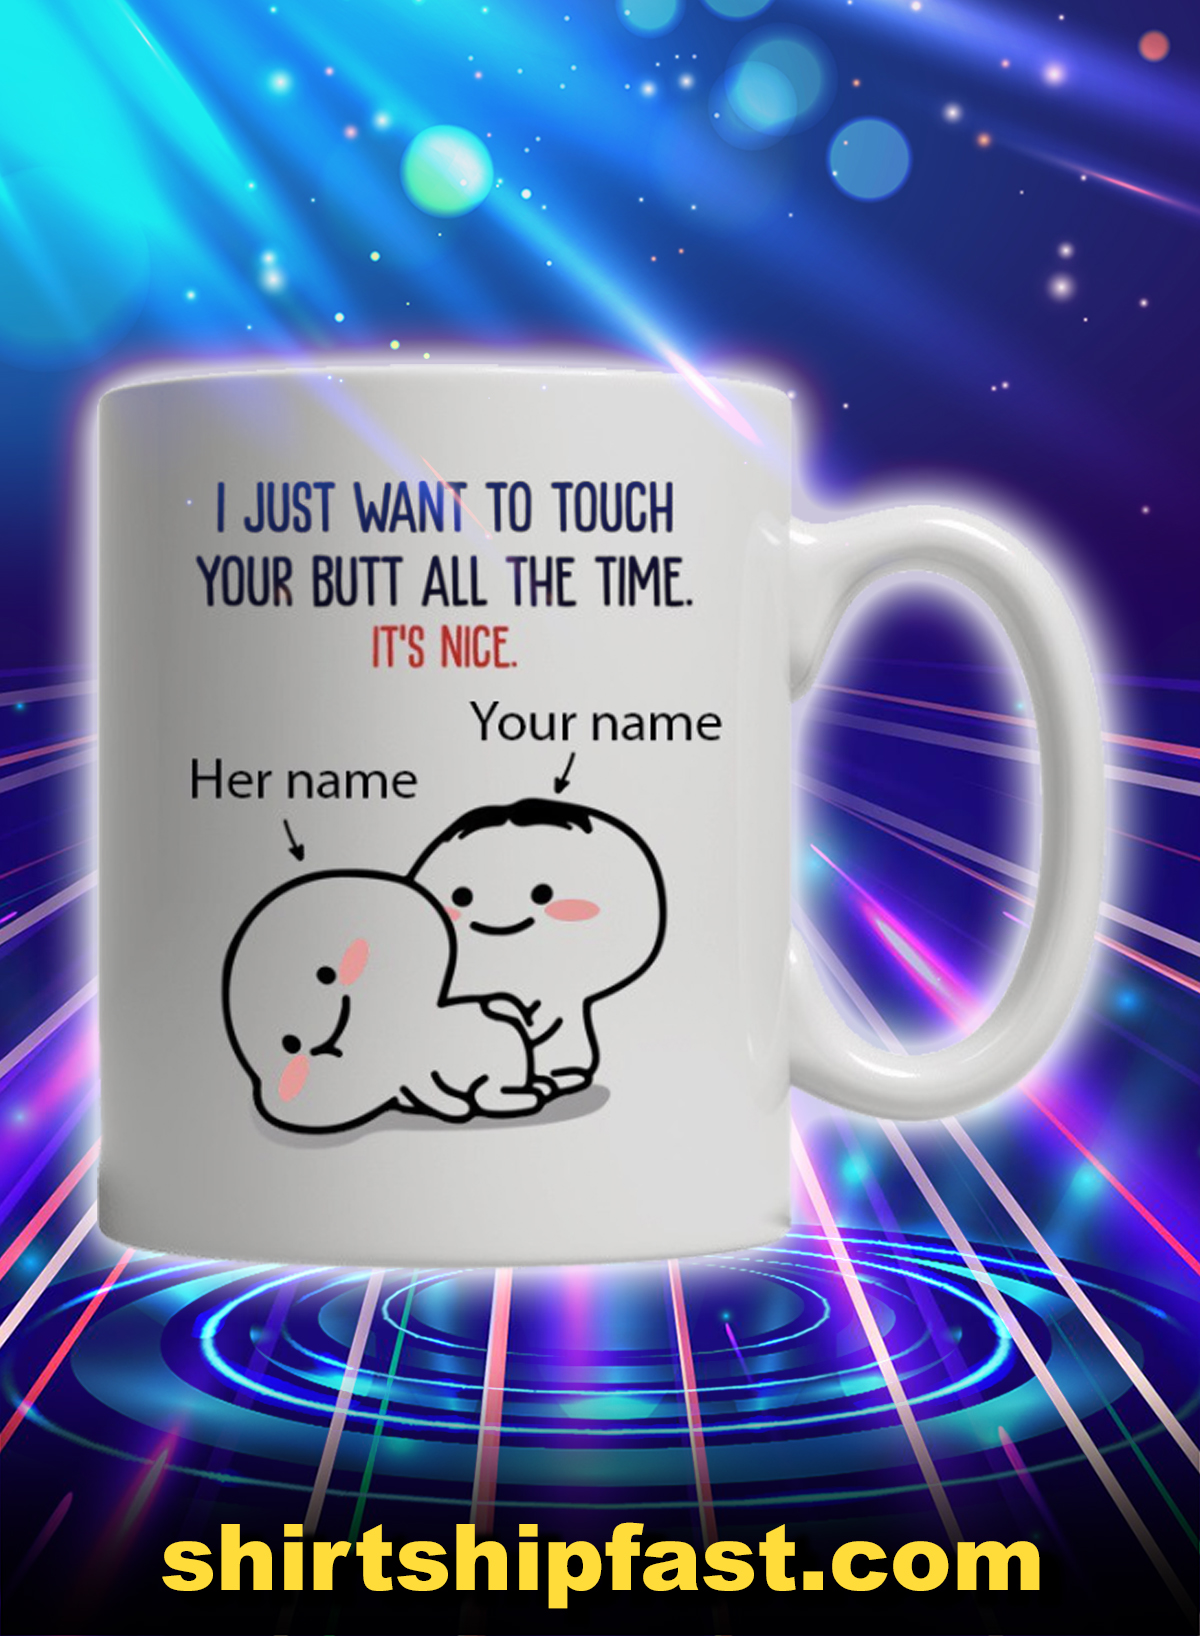 Customize I just want to touch your butt all the time mug - Picture 1